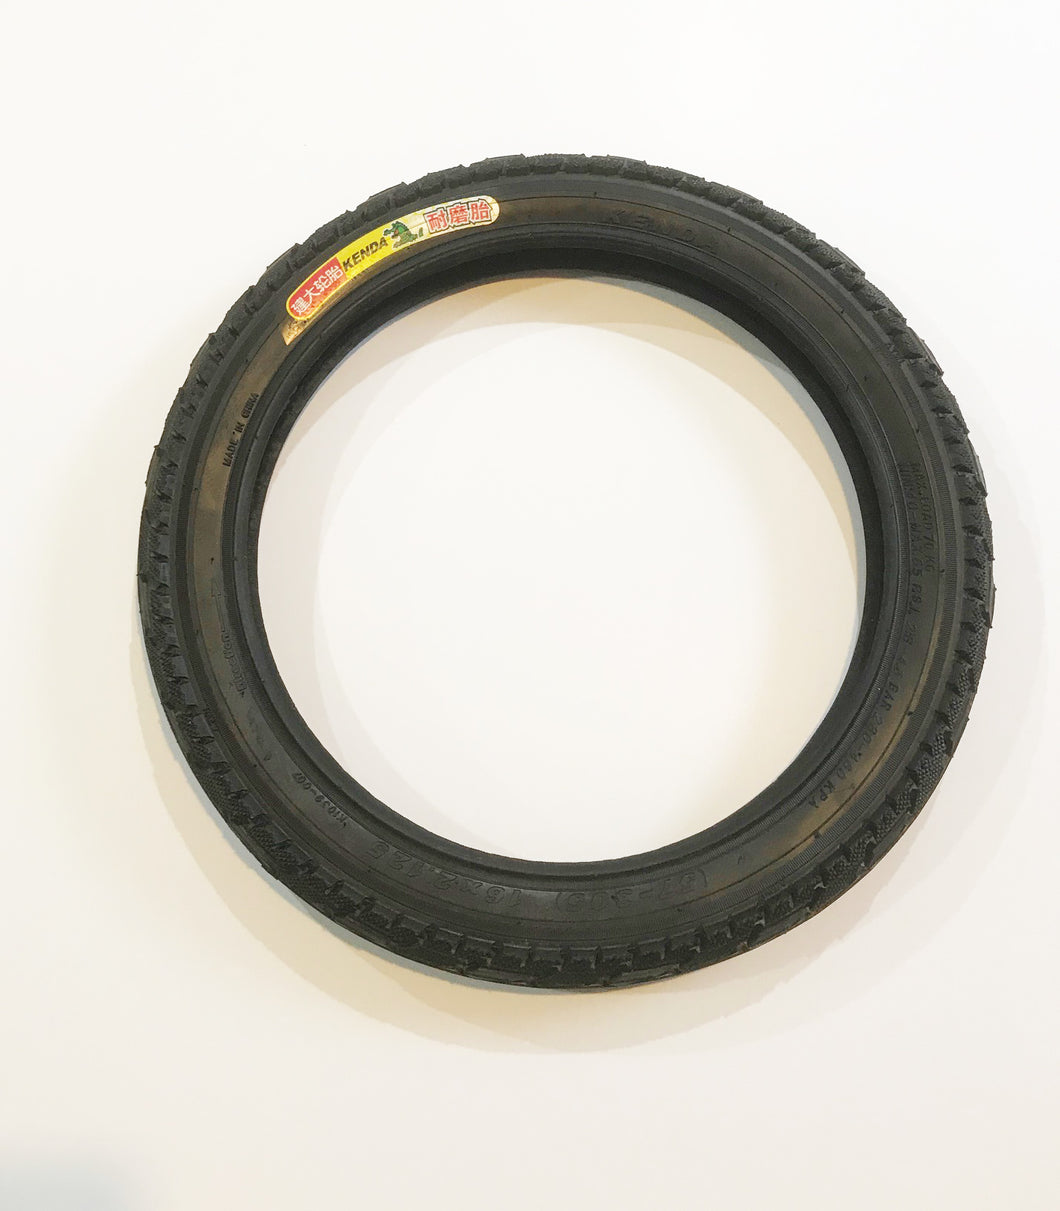 16S Replacement tire